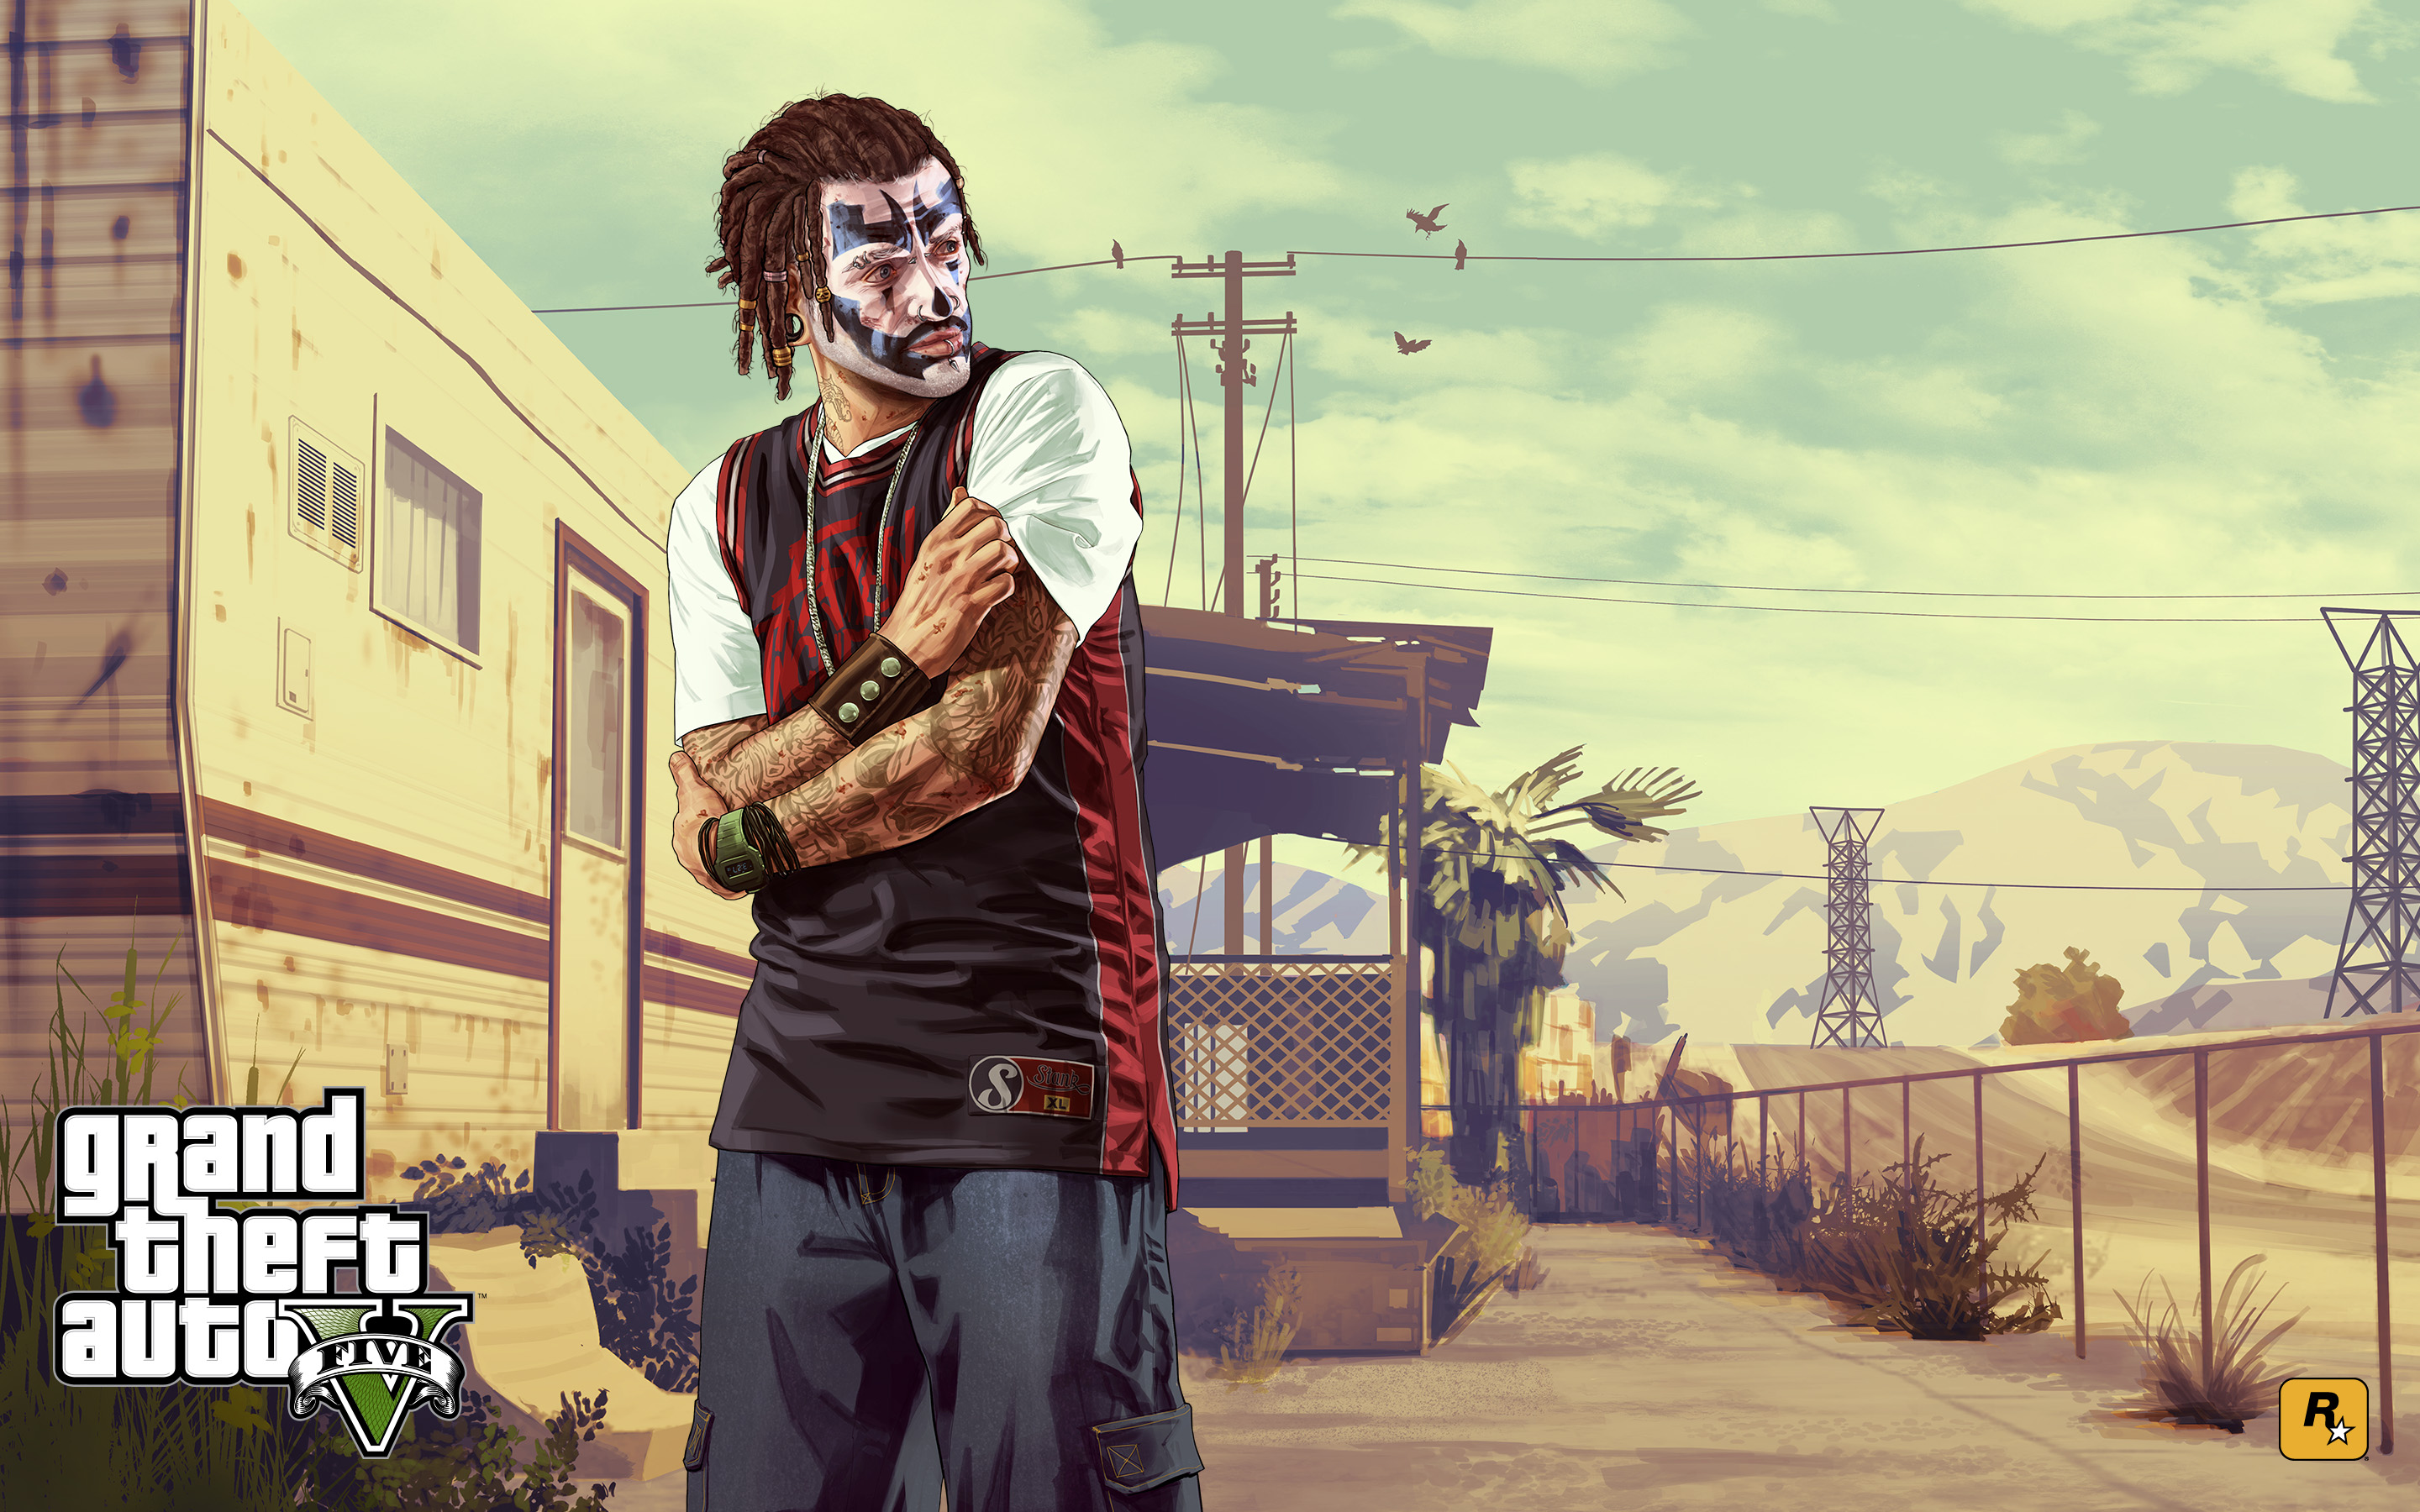 The gta place gta v artwork - Gta v wallpaper ...